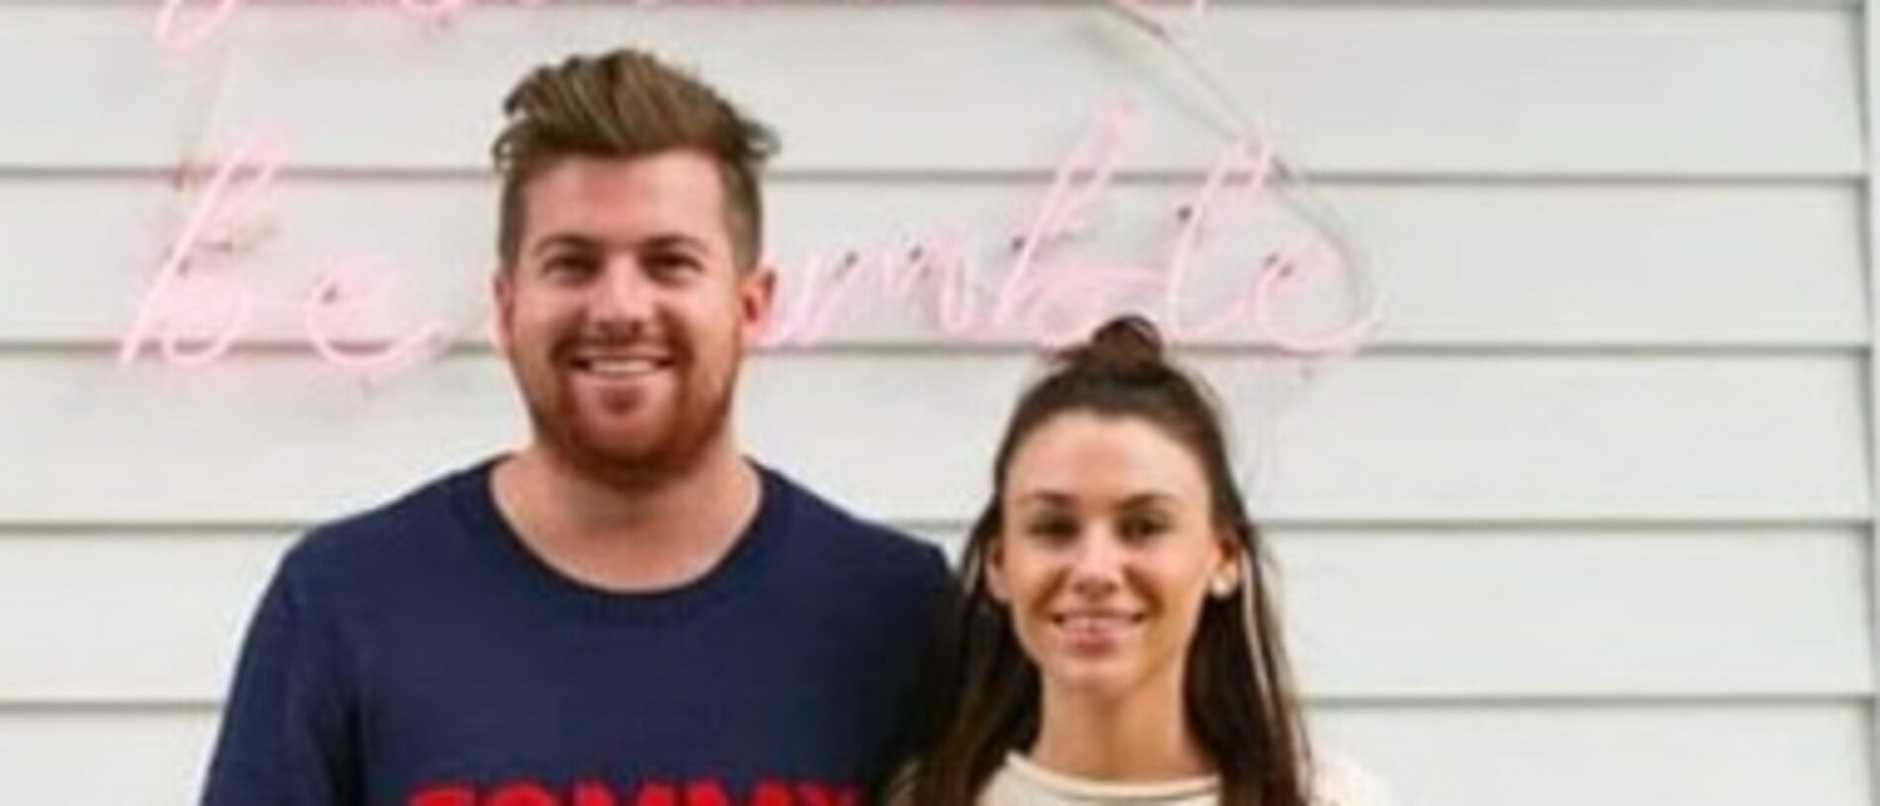 'This has broken us': Business owners say the hit has further destroyed them, after having to let 11 casual staff go.